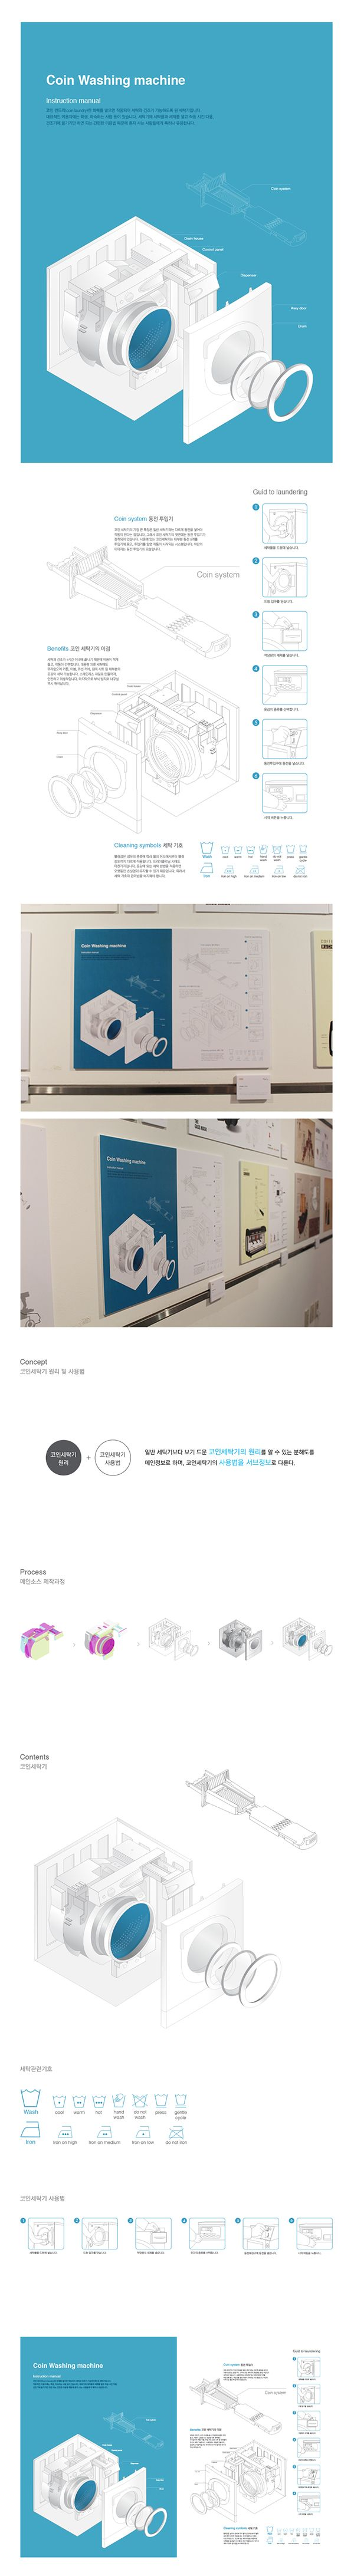 류혜수│ Information Design 2014│ Dept. of Digital Media Design │#hicoda…